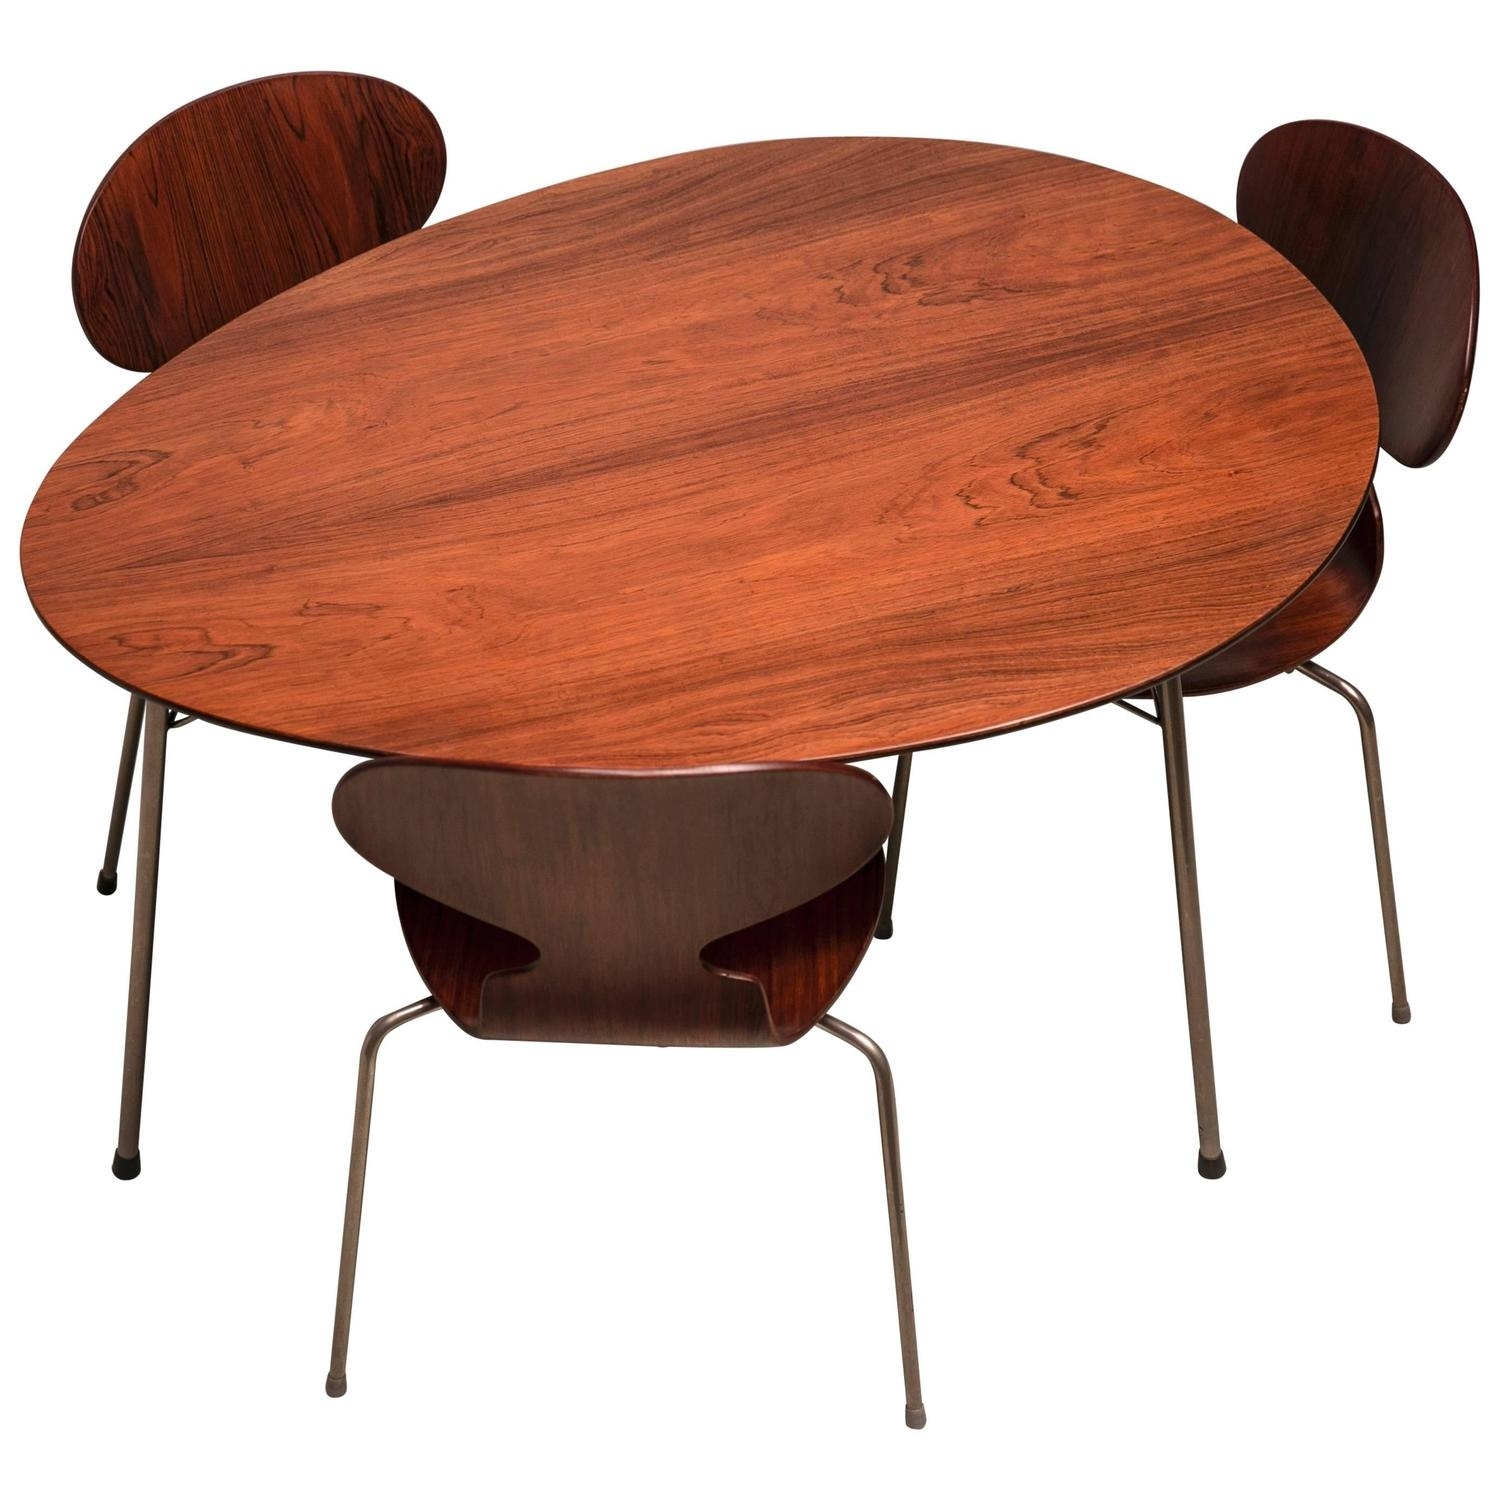 Exceptional Early Brazilian Rosewood Egg Table And Ant Chairs Throughout Mid Century Modern Egg Tables (Gallery 7 of 30)